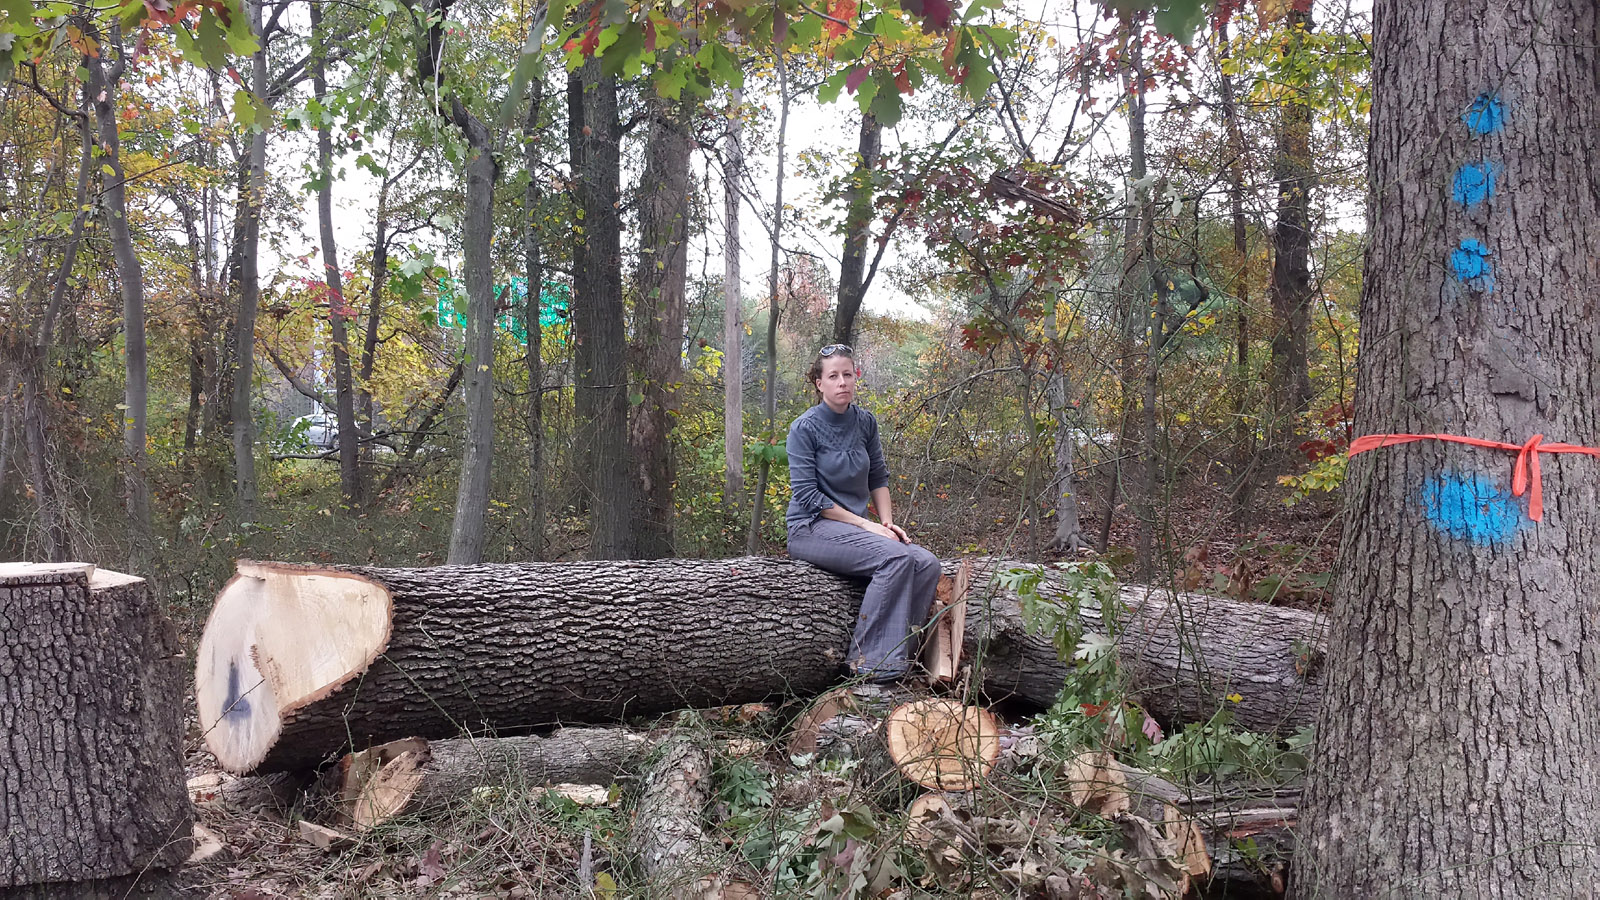 Carolyn Muscar is among Berwyn Heights residents who believe Pepco should do more to protect old growth trees. She suggests a more frequent maintenance schedule could prevent trees from growing into zones deemed problematic to power lines. (Courtesy Therese Forbes)